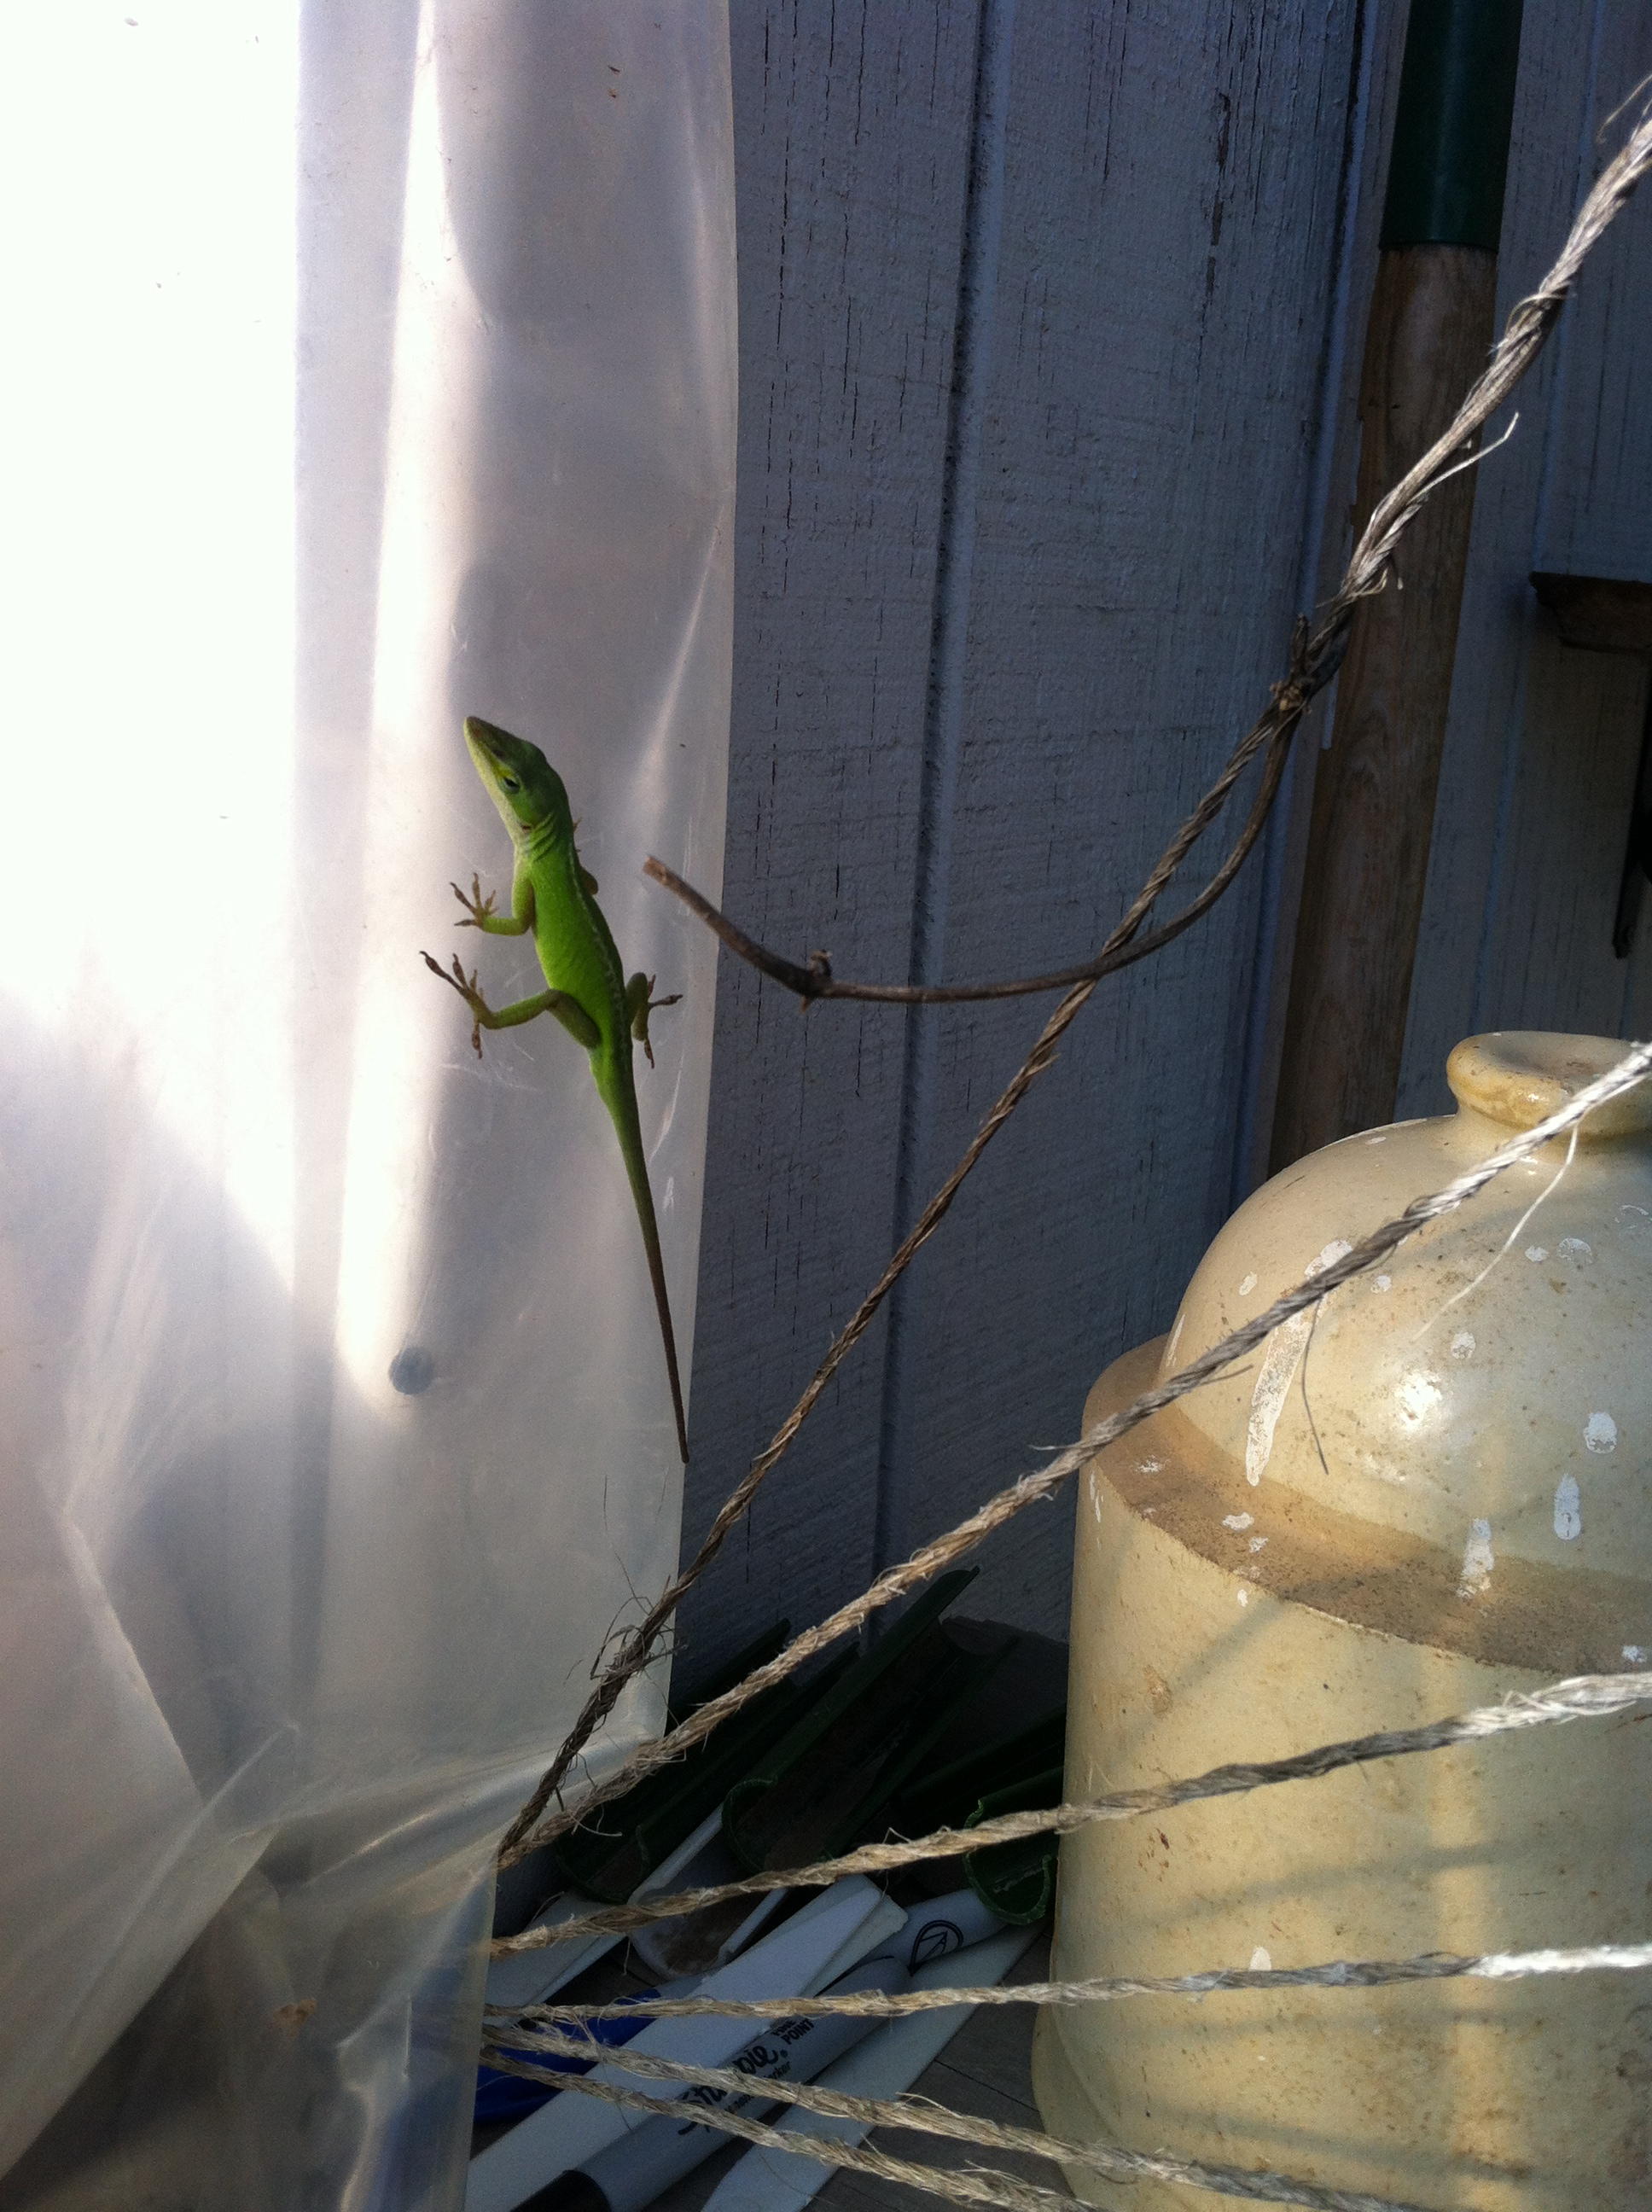 Male Anole lizard. Reptiles and amphibians are a welcome sight in the garden. Lizards, frogs and toads will help rid your garden of pest bugs.